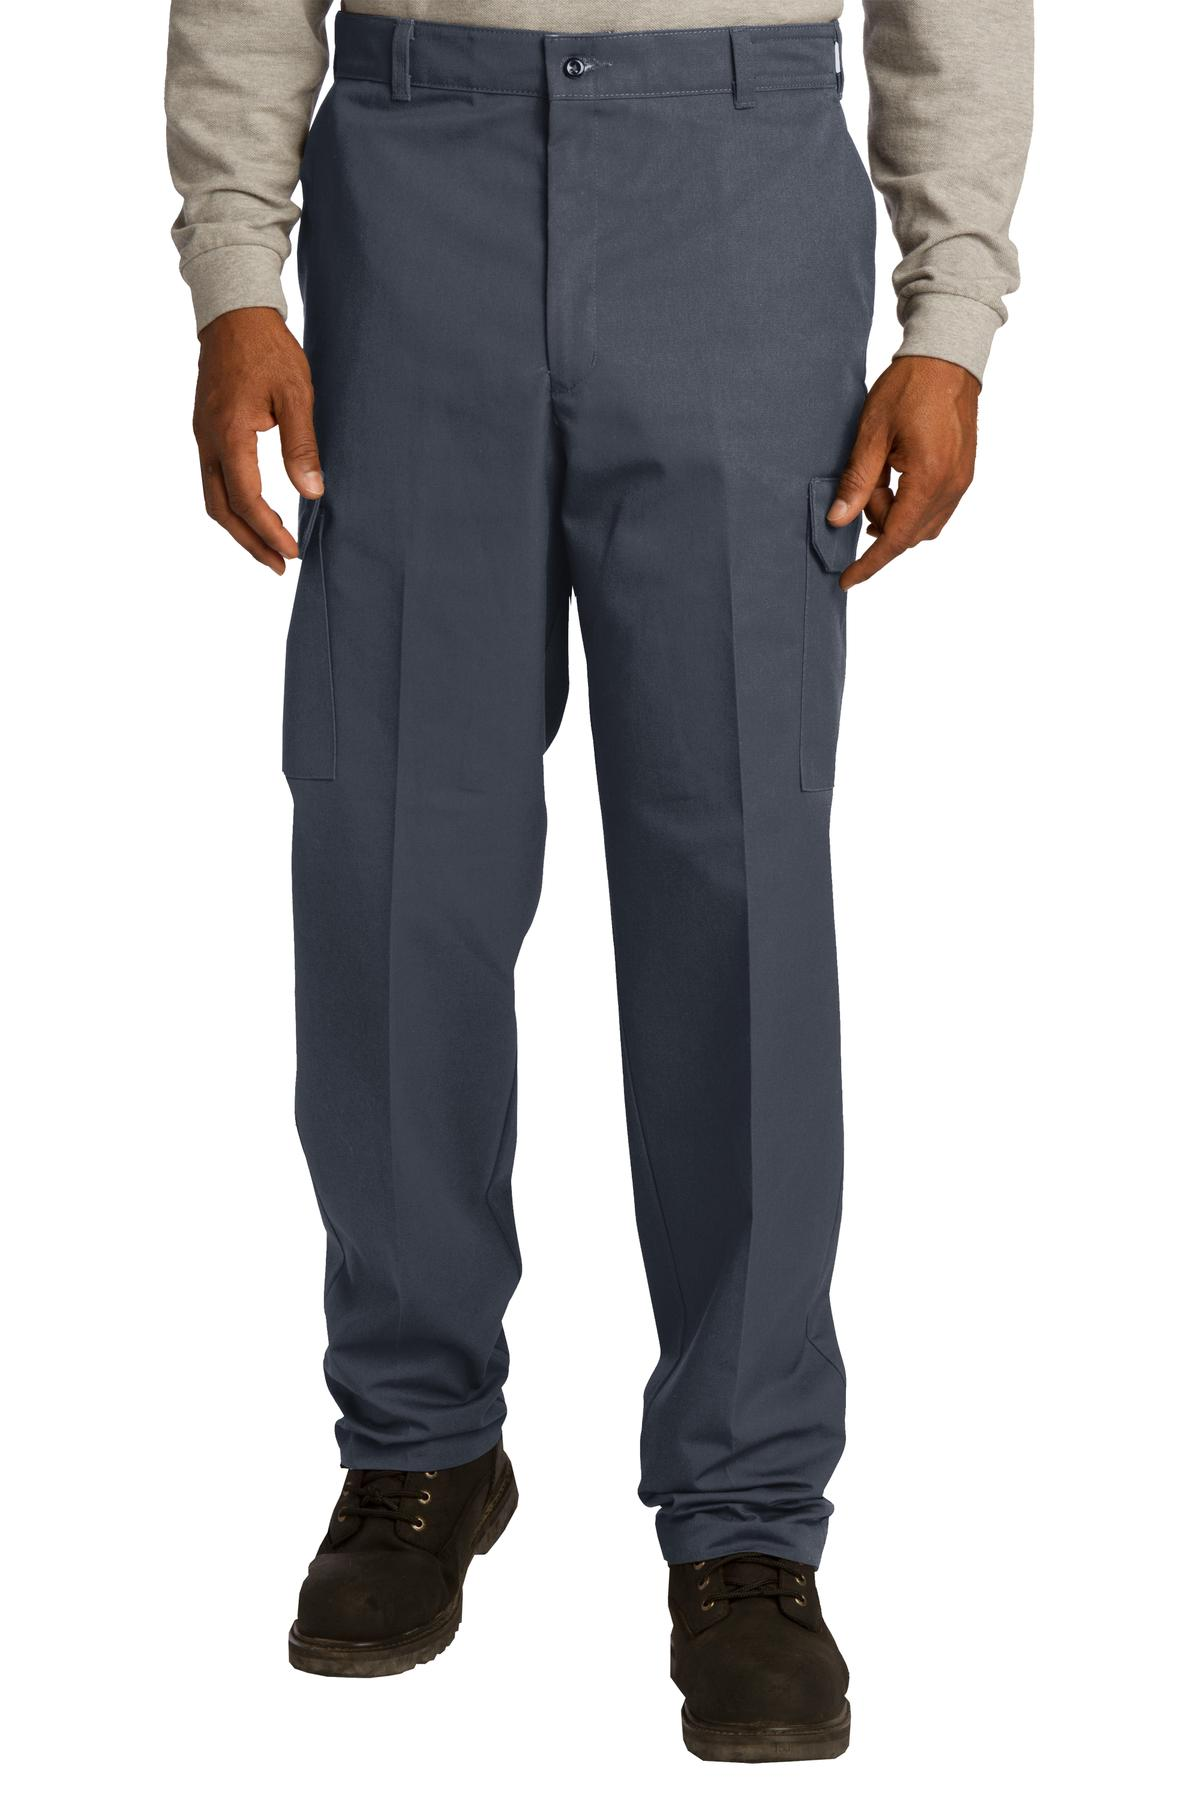 Red Kap ®  Industrial Cargo Pant. PT88 - Charcoal